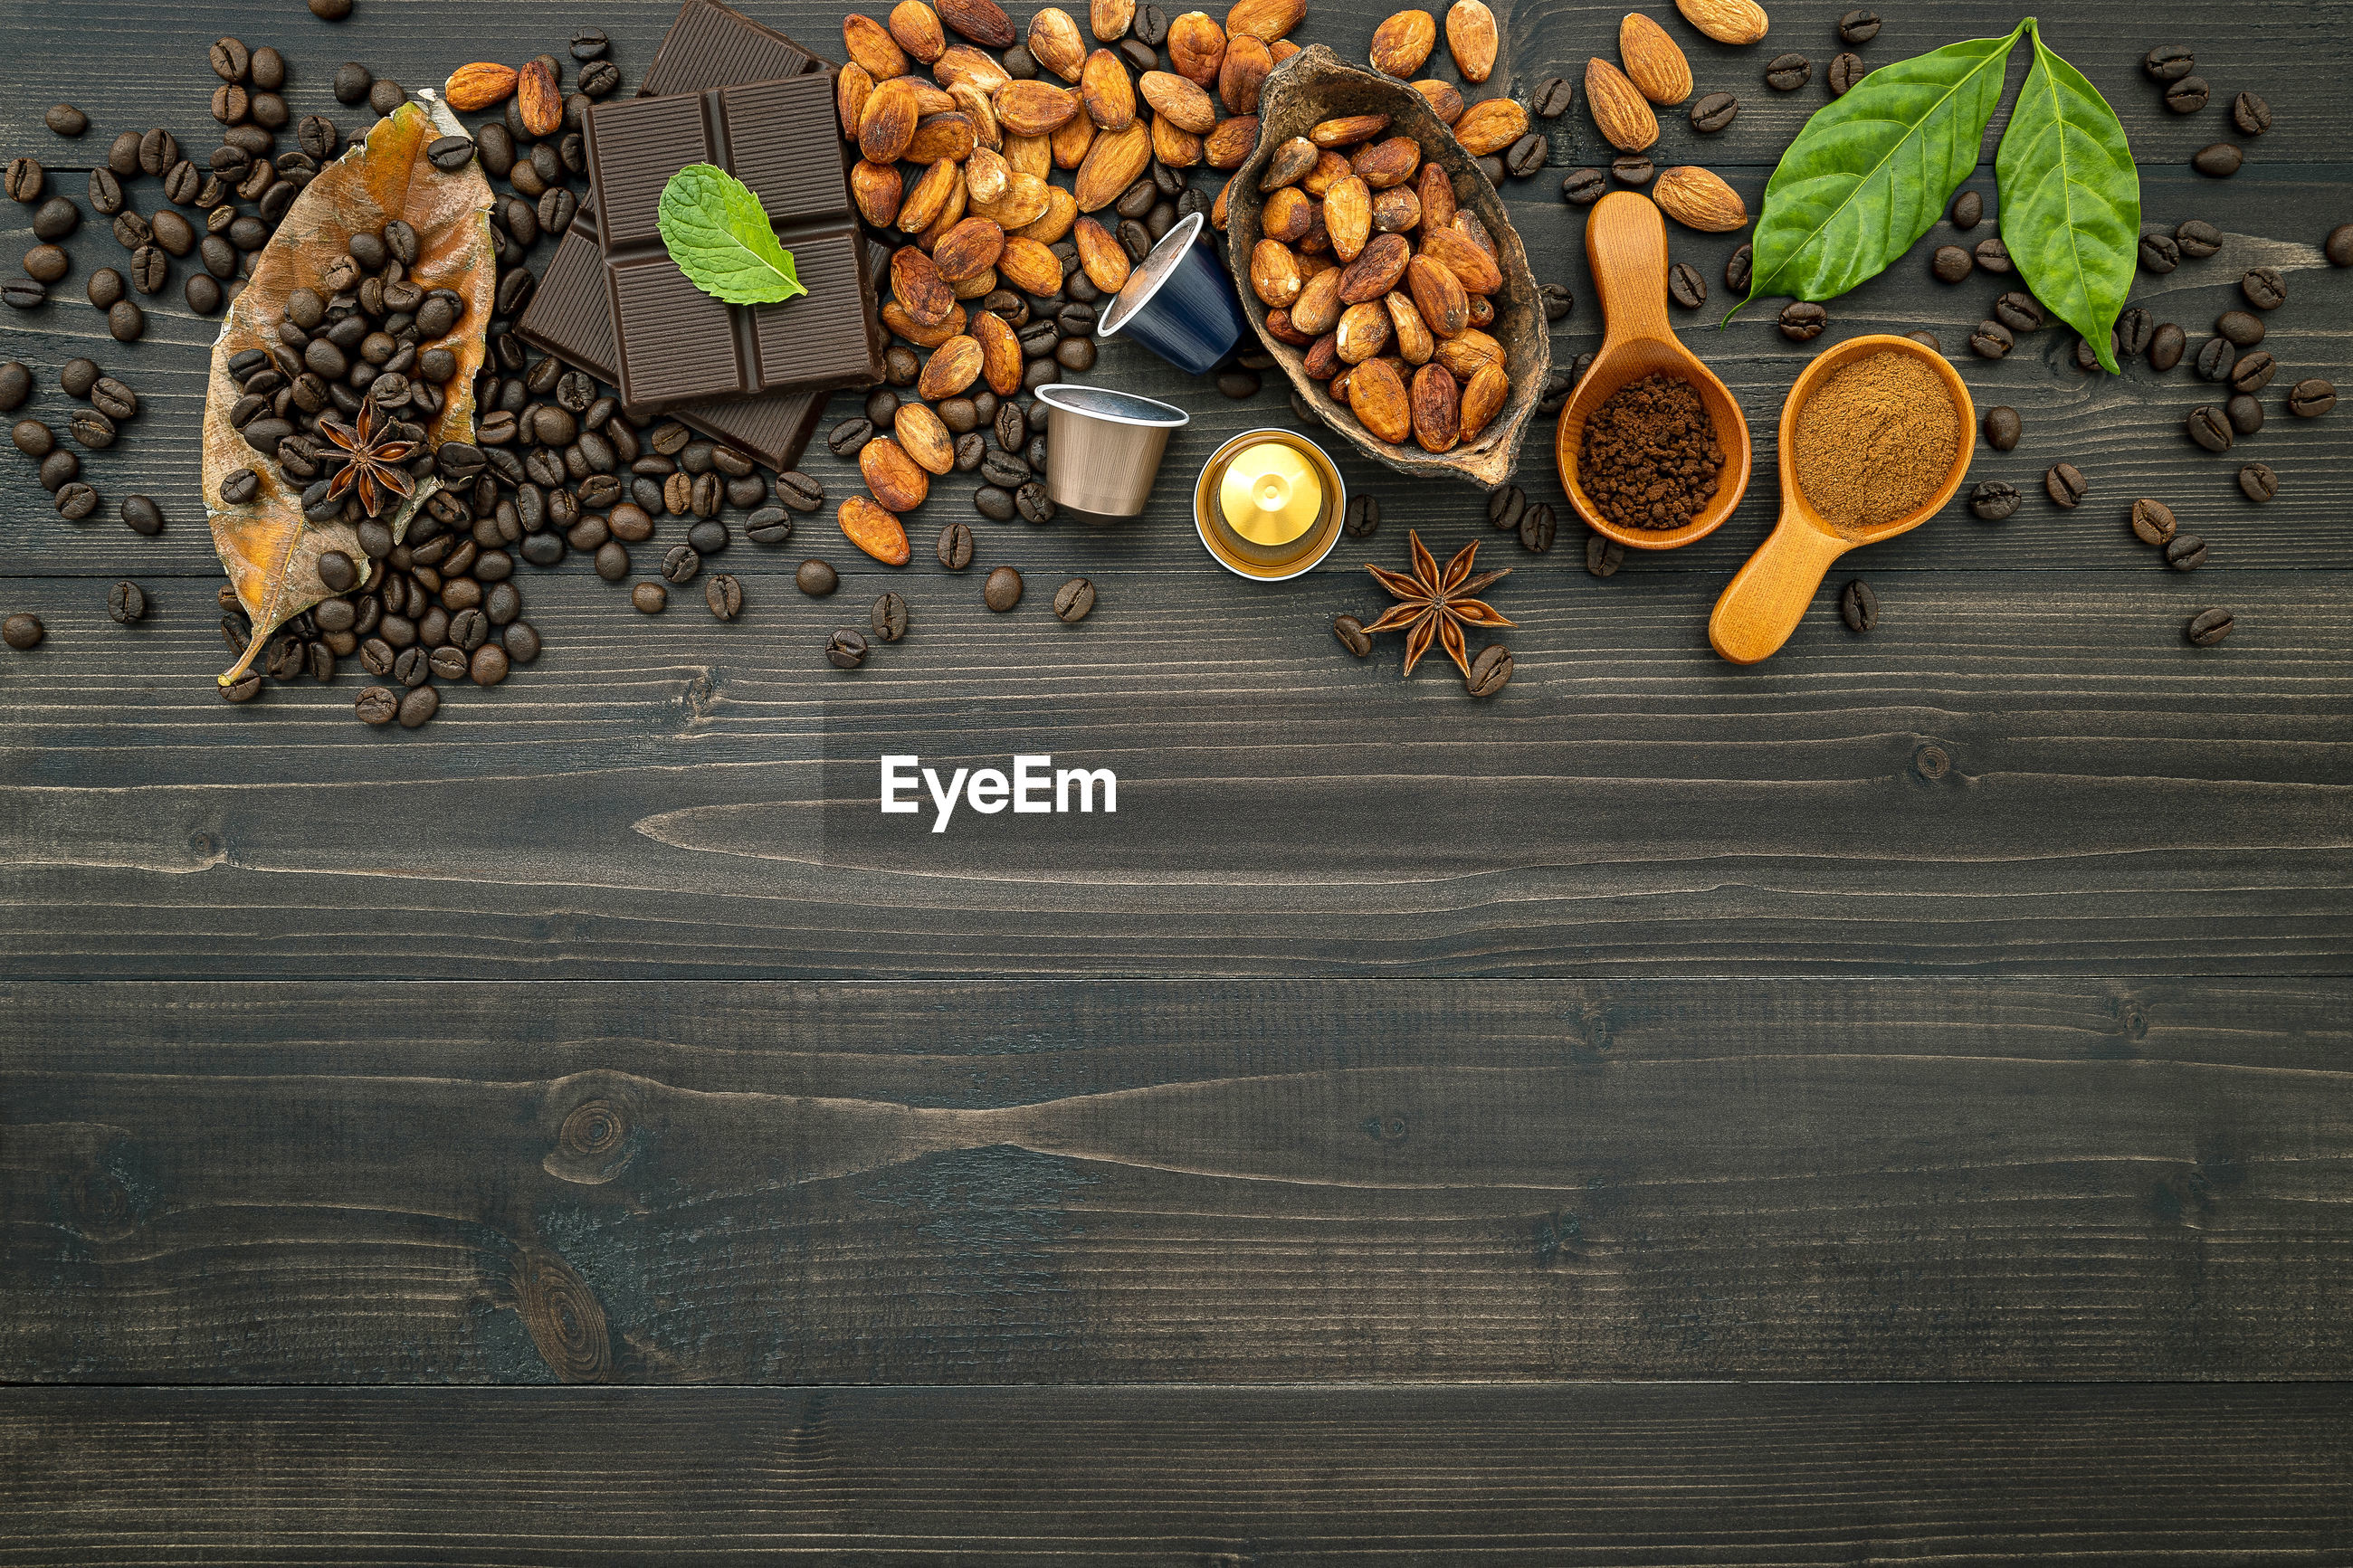 HIGH ANGLE VIEW OF COFFEE BEANS ON TABLE IN CAFE